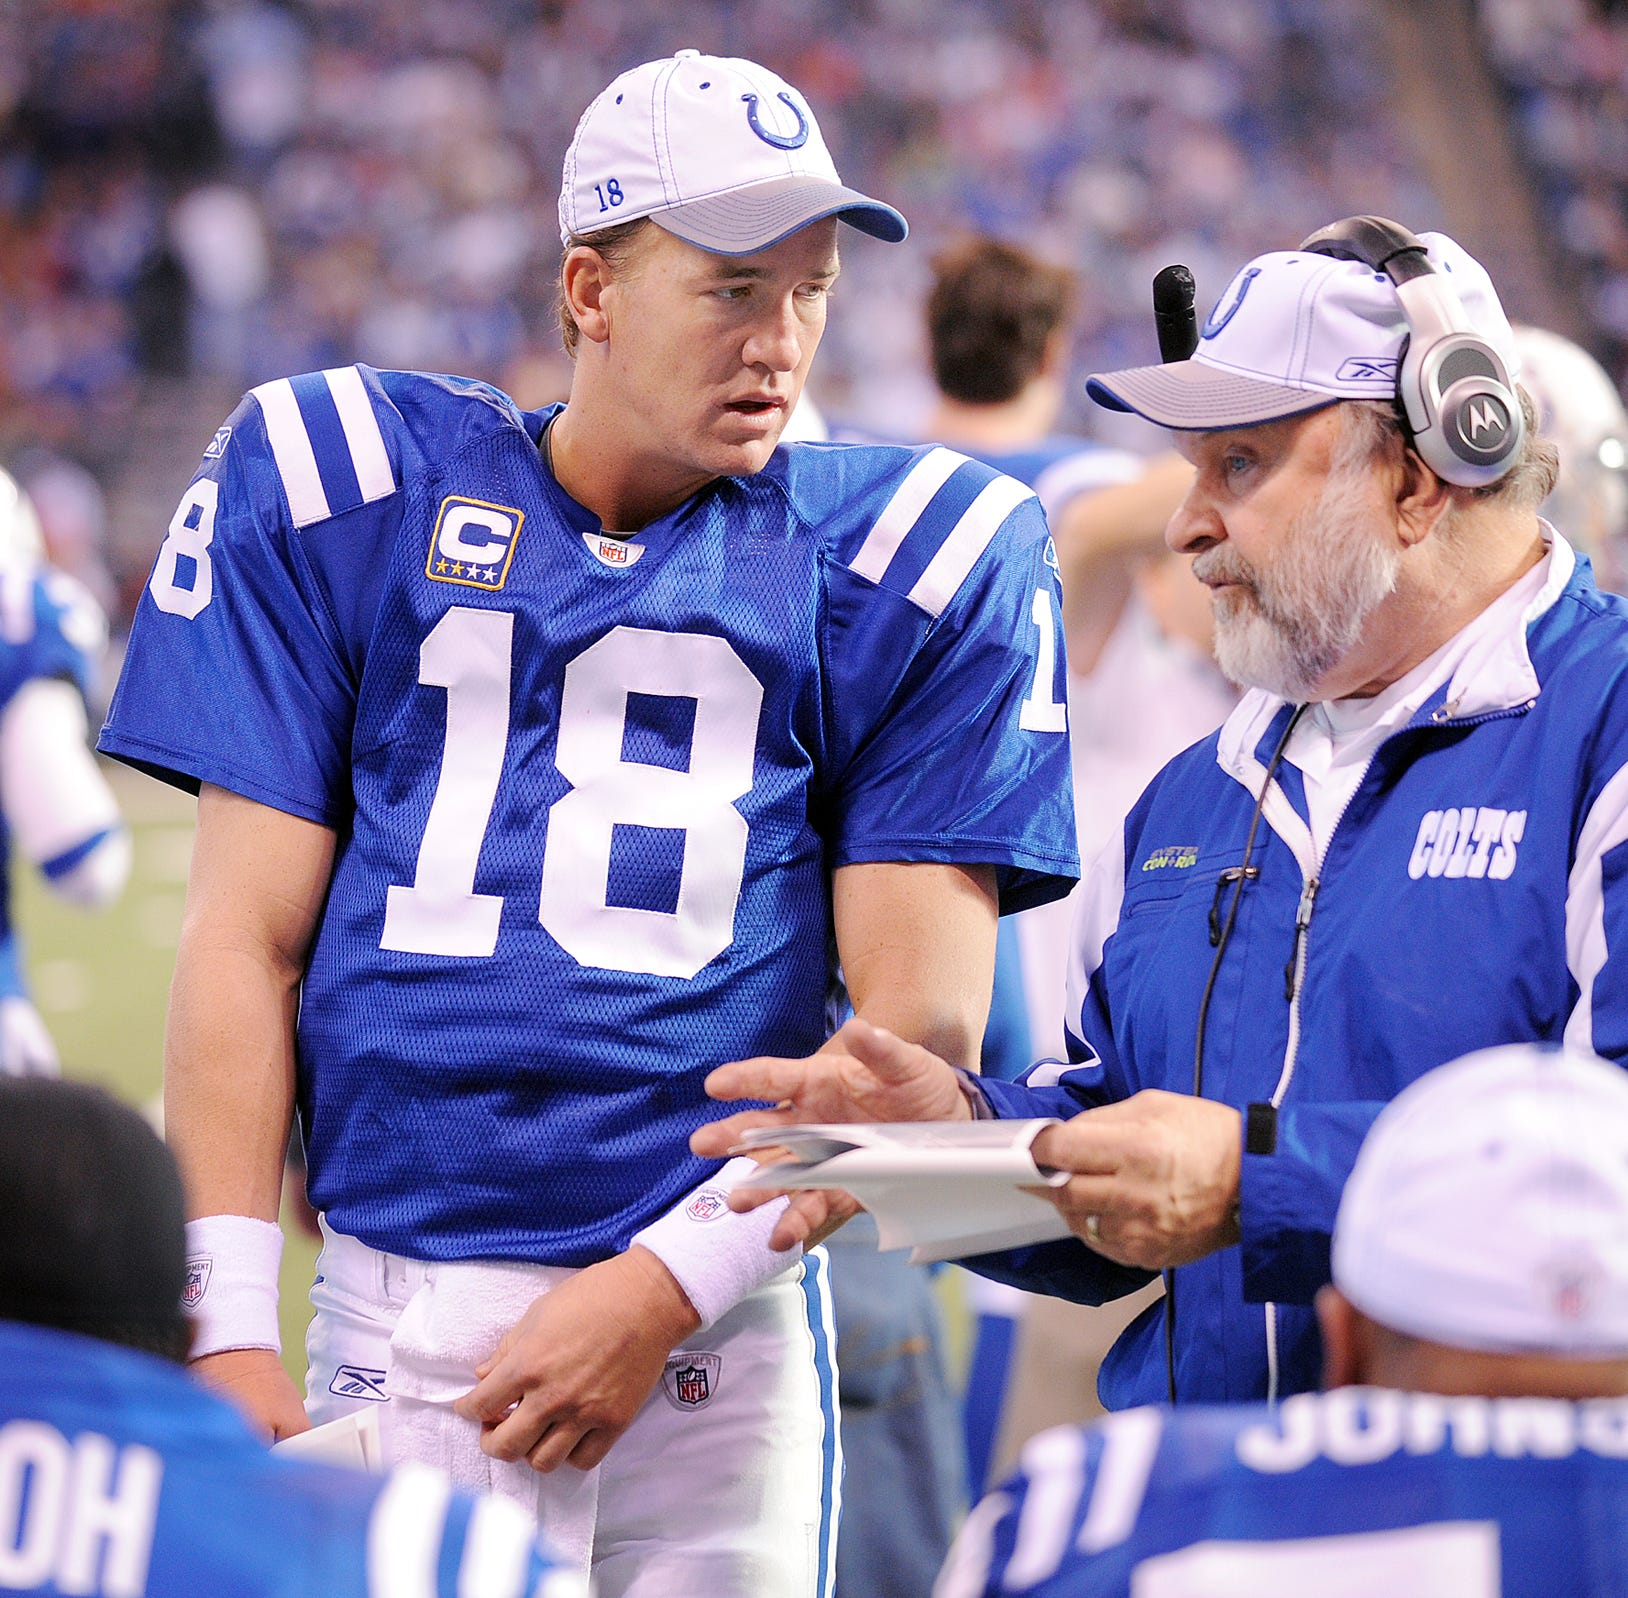 Howard Mudd's back to coaching again because Colts had the right people in place